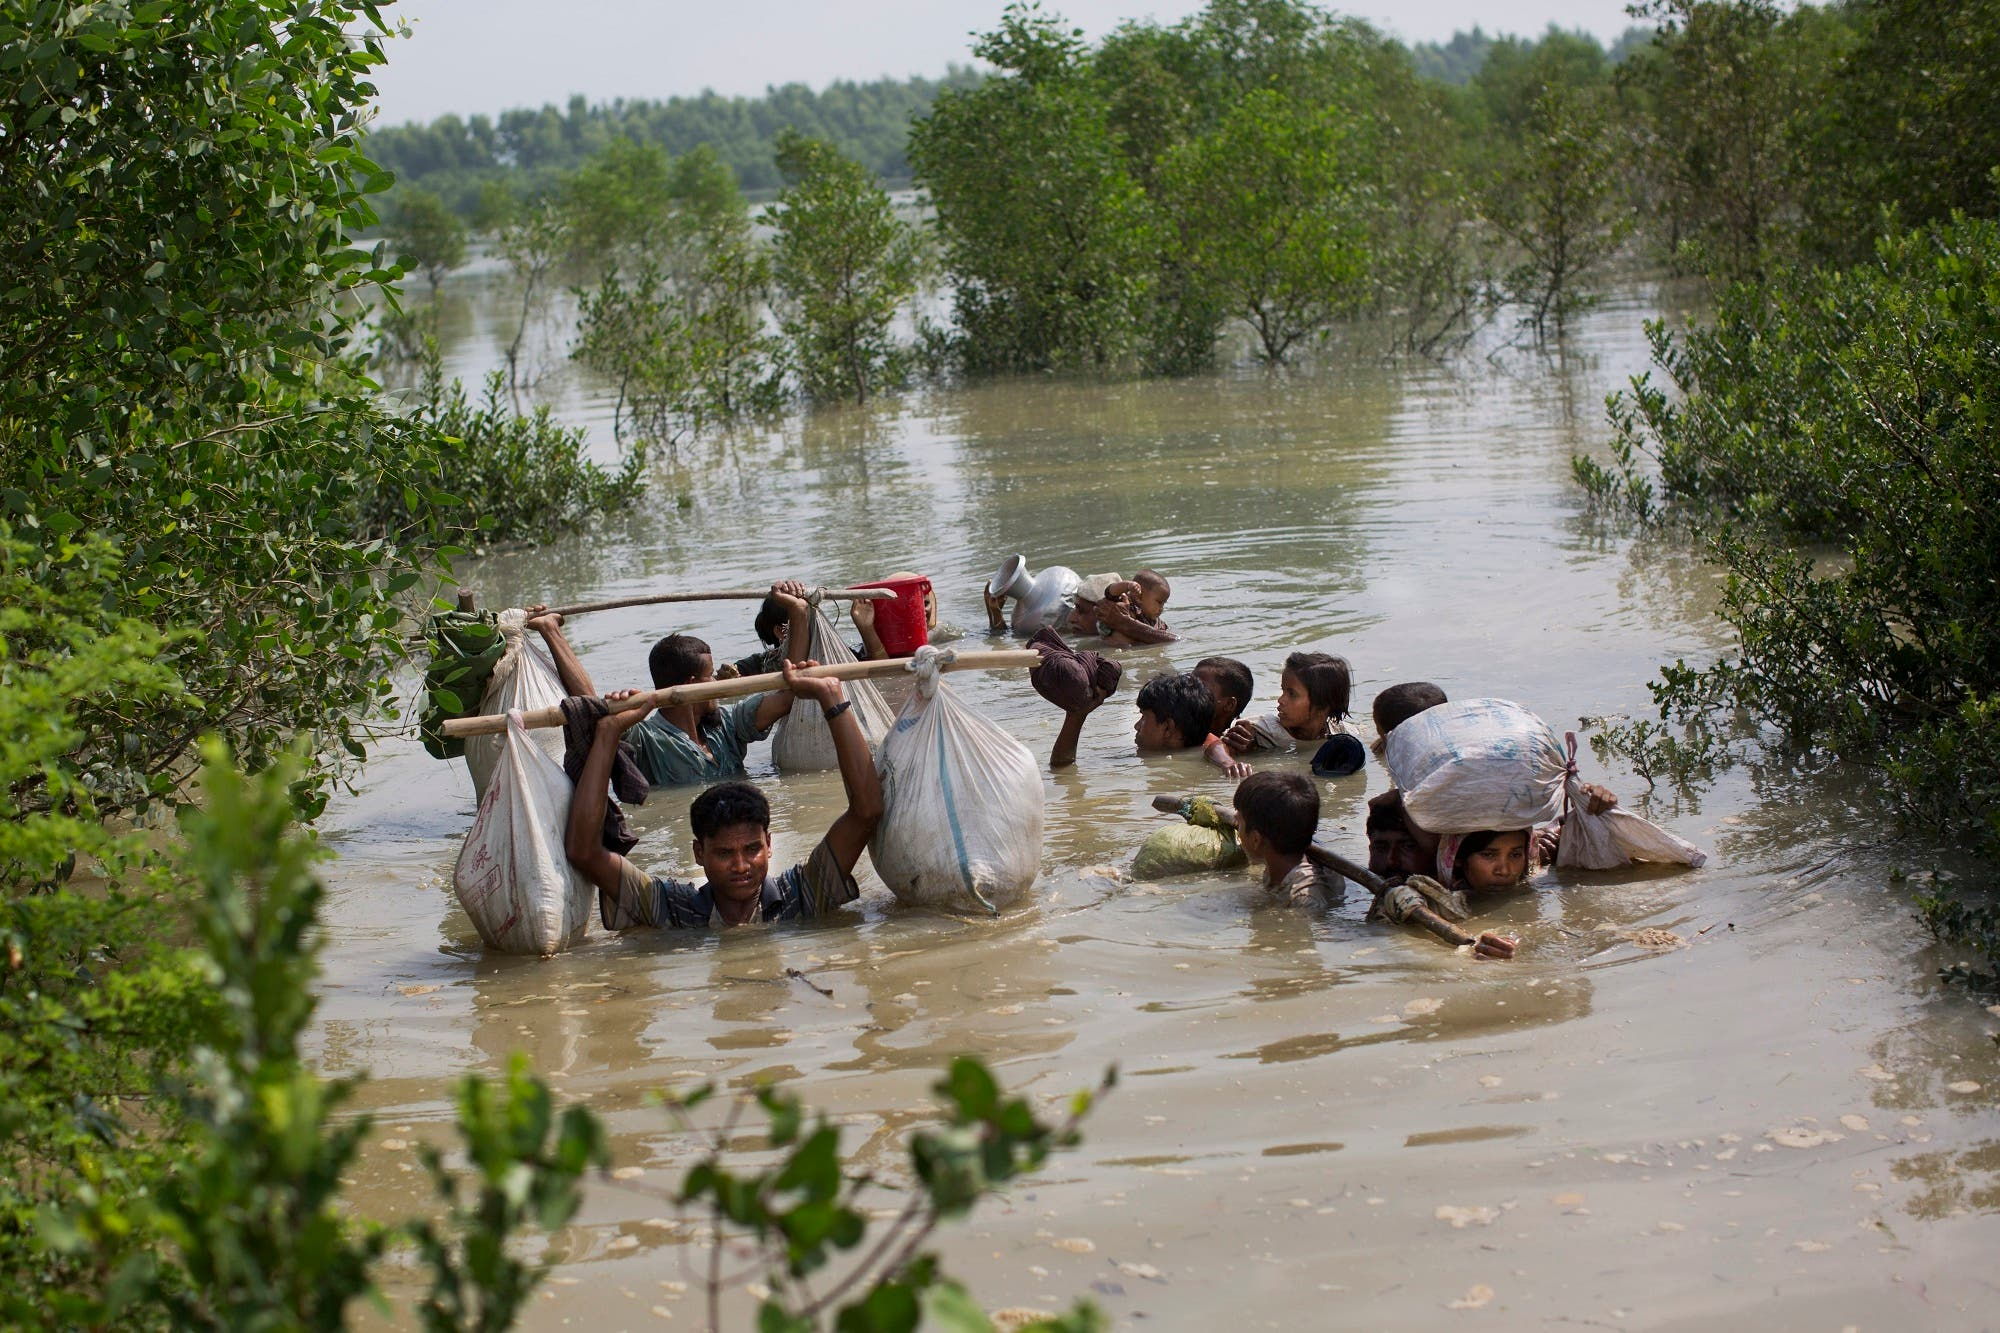 A Rohingya family reaches the Bangladesh border after crossing a creek of the Naf river on the border with Myanmmar, in Cox's Bazar's Teknaf area, on Sept. 5, 2017. (AP)